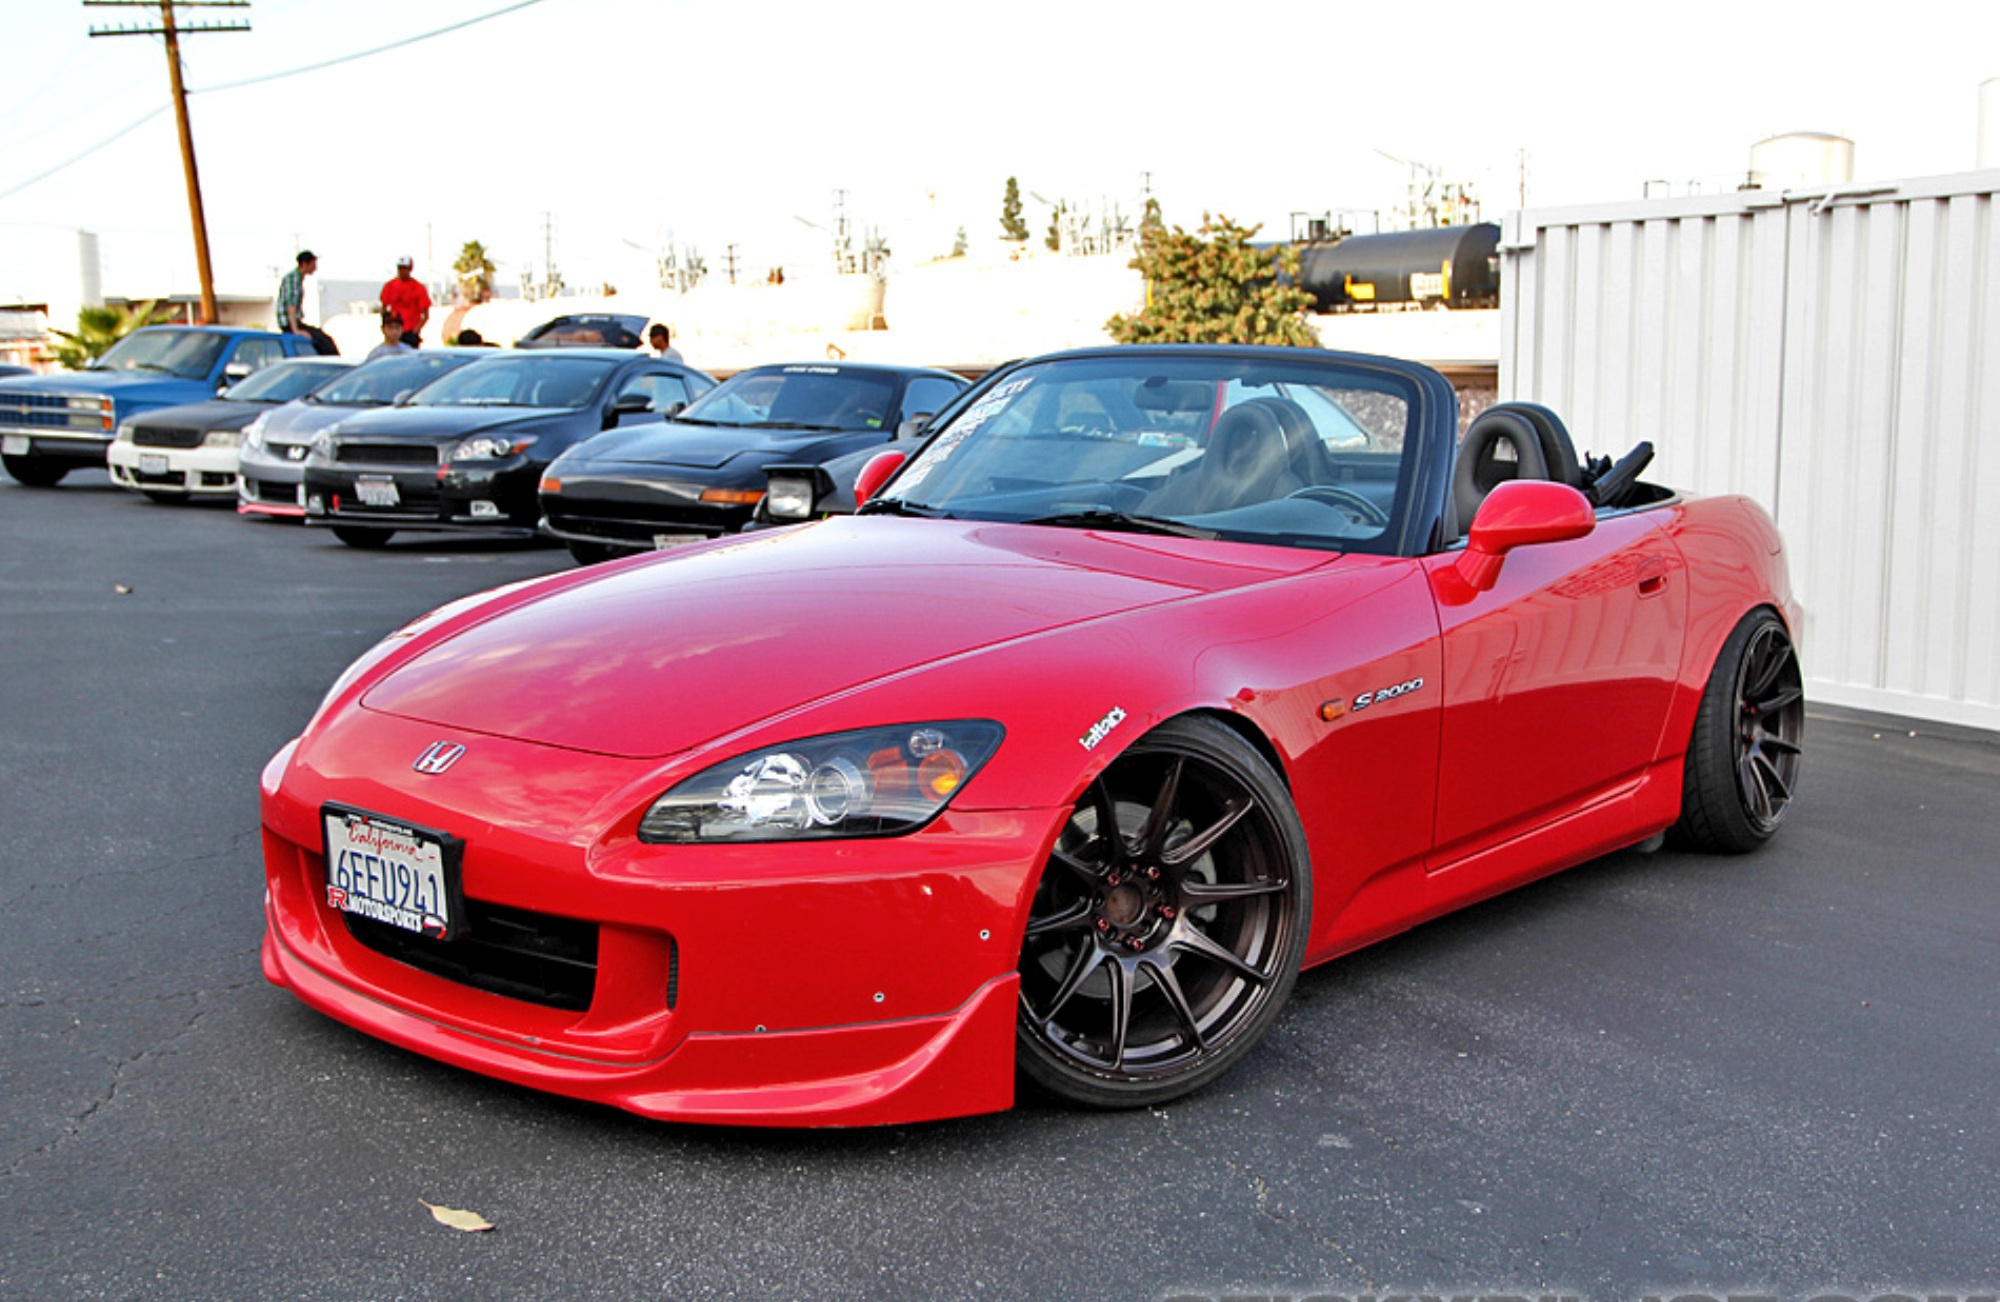 Honda S2000 HD Wallpaper